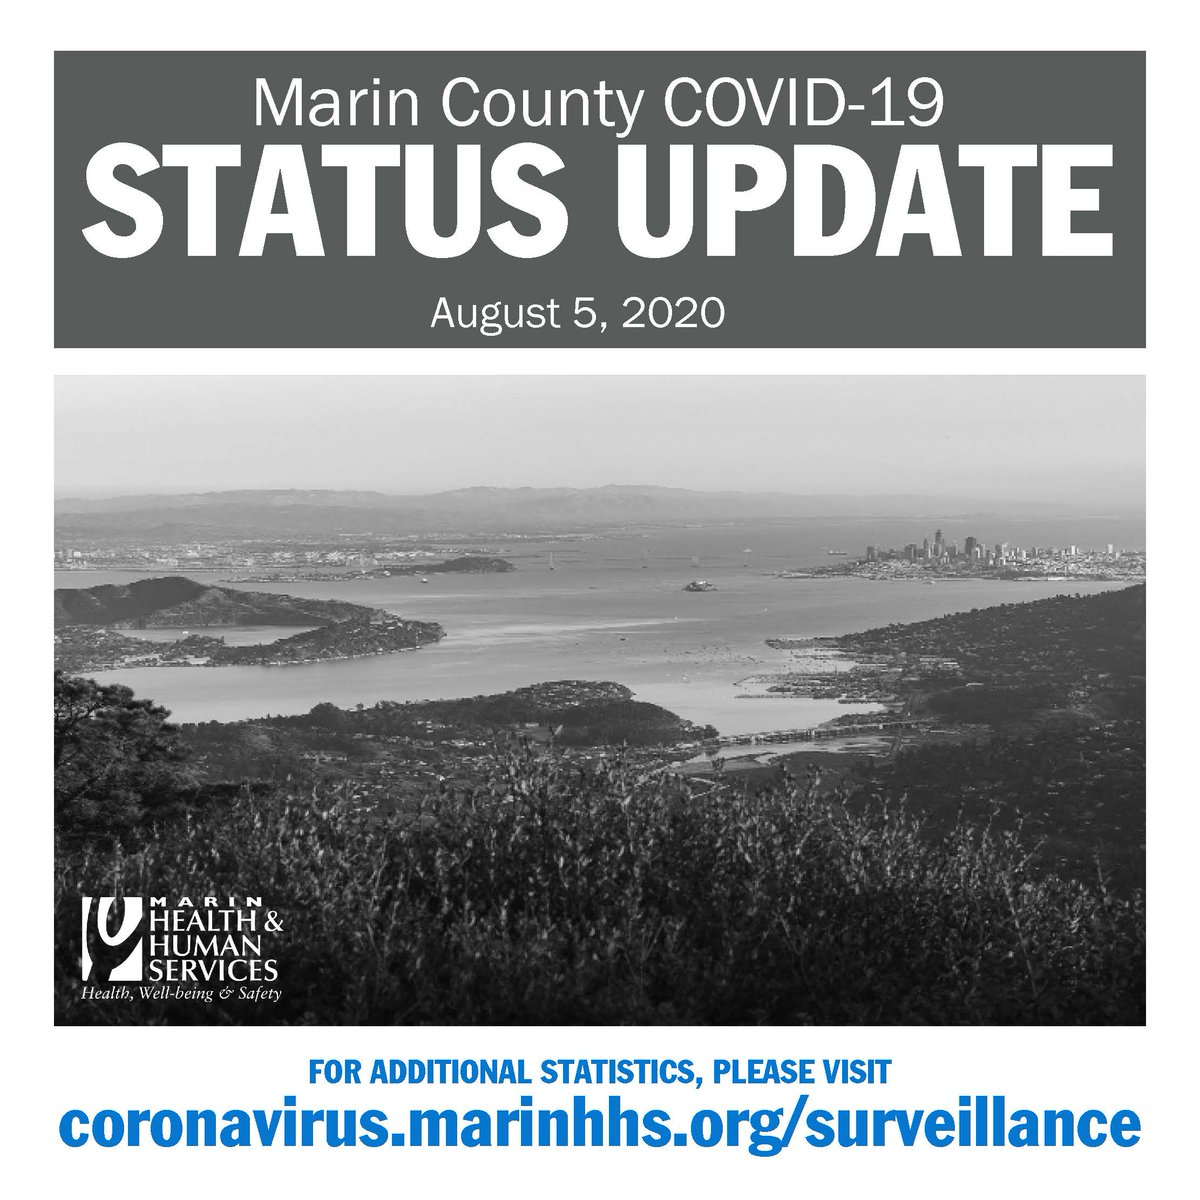 The August 5 status update includes:  🏫 - info update on school waiver option from the state's distance learning mandate 📺 - a new series of student-produced #COVID safety messages  📊 - updated #COVID19 activity.   Full Update: https://t.co/WLGVxYdqBW #MarinCounty https://t.co/VVNwTSSWAd